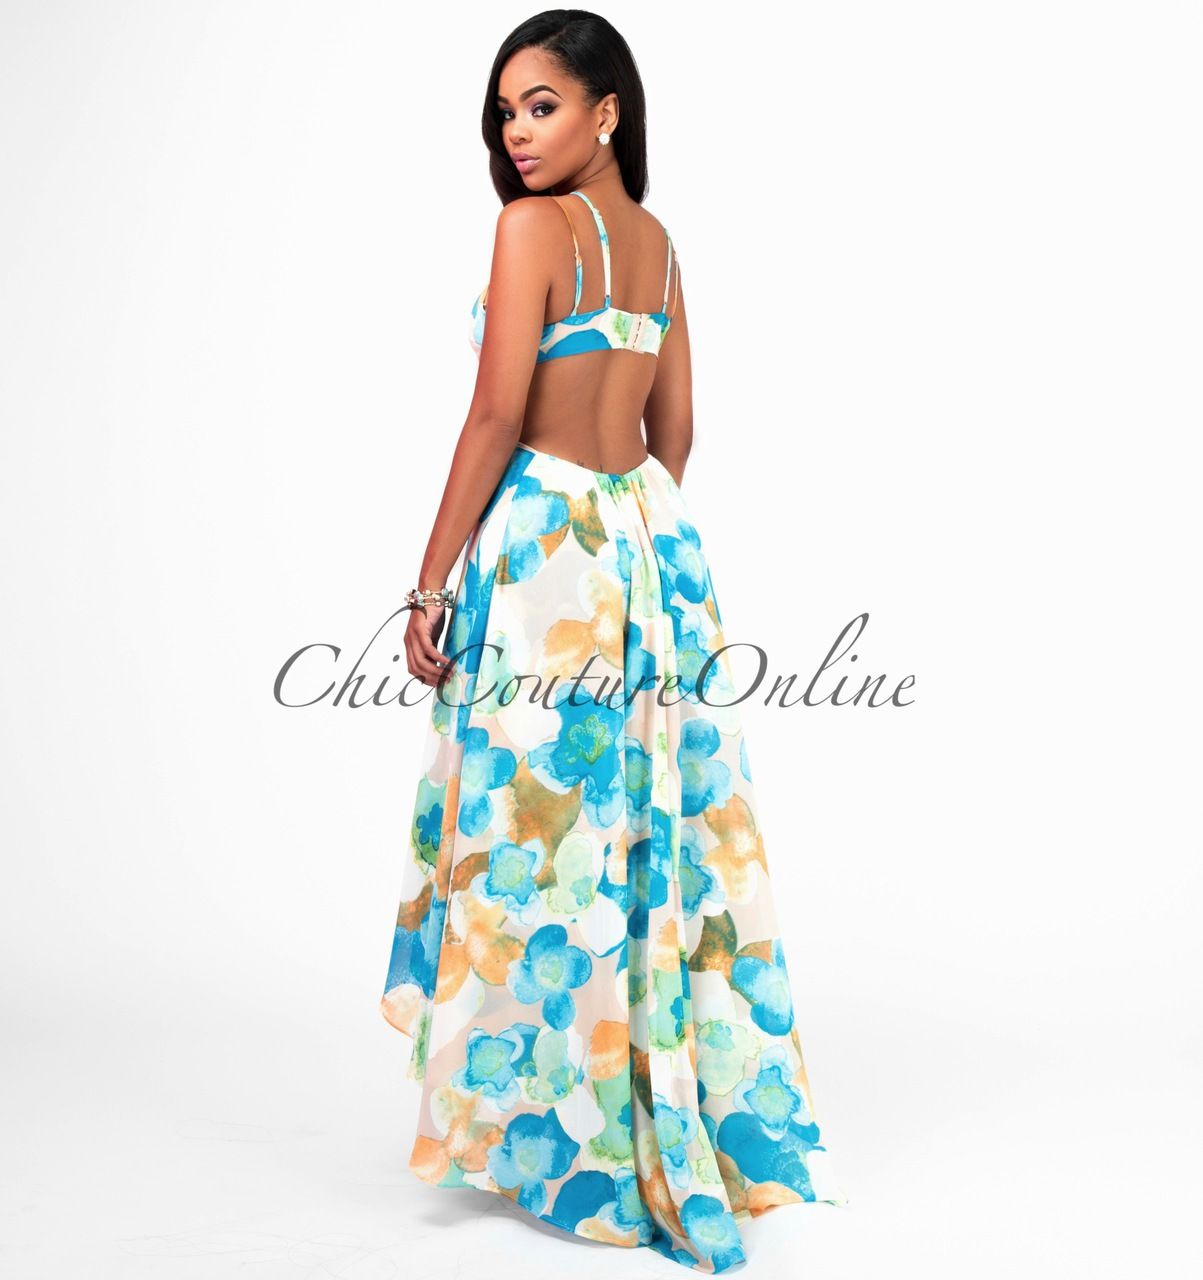 Aqua couture maxi dress